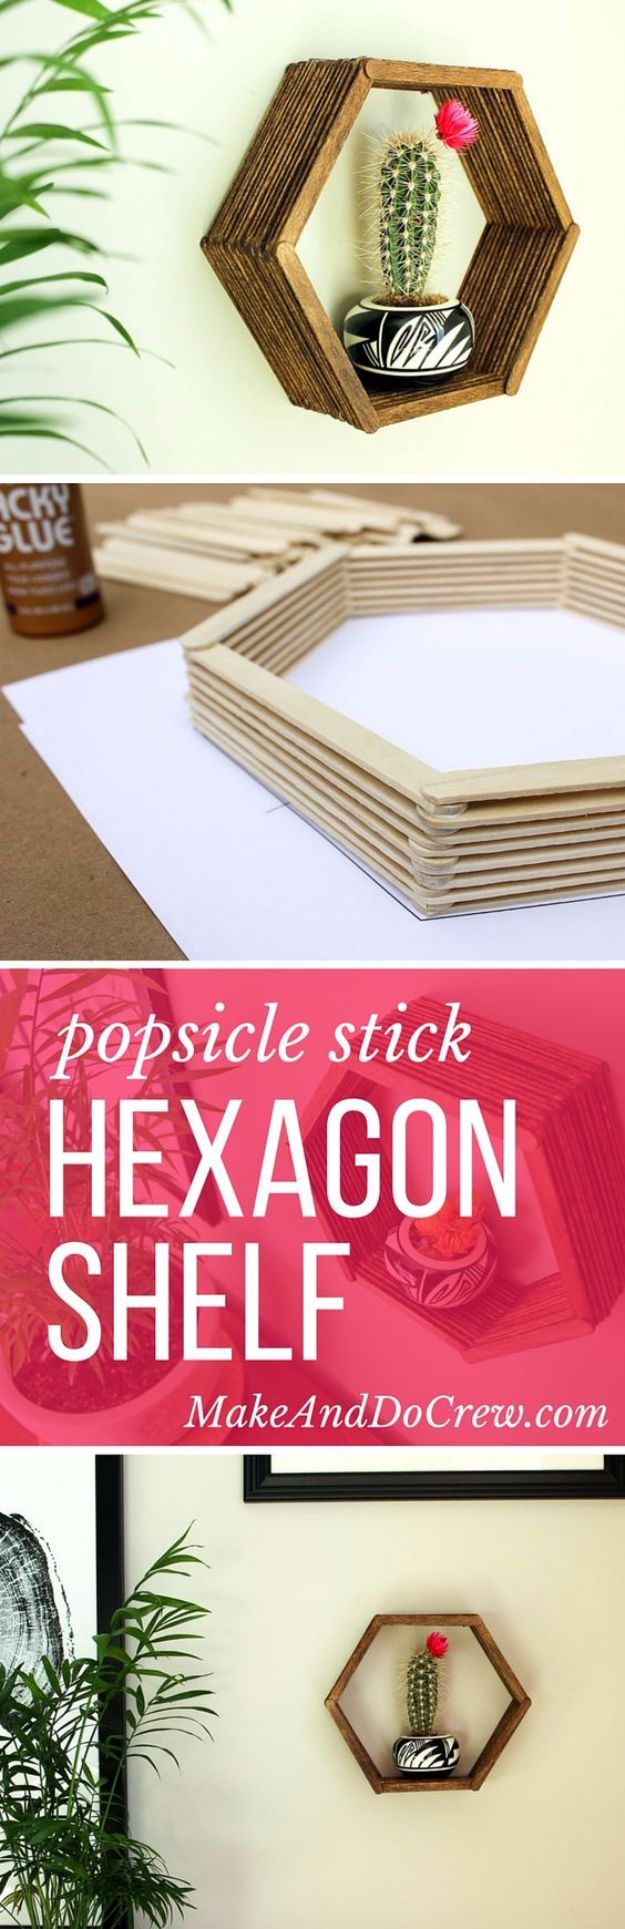 DIY Wall Art Ideas and Do It Yourself Wall Decor for Living Room, Bedroom, Bathroom, Teen Rooms | DIY Wall Art Popsicle Stick Hexagon Shelf | Cheap Ideas for Those On A Budget. Paint Awesome Hanging Pictures With These Easy Step By Step Tutorial